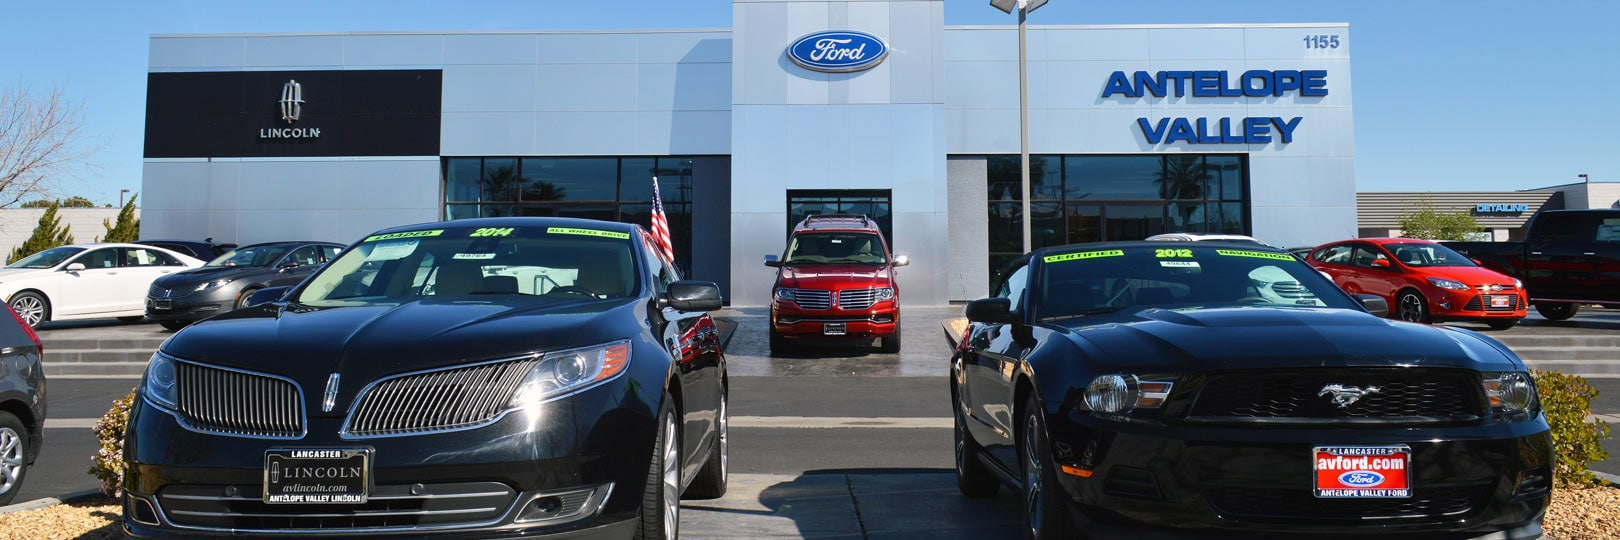 Welcome to Antelope Valley Ford